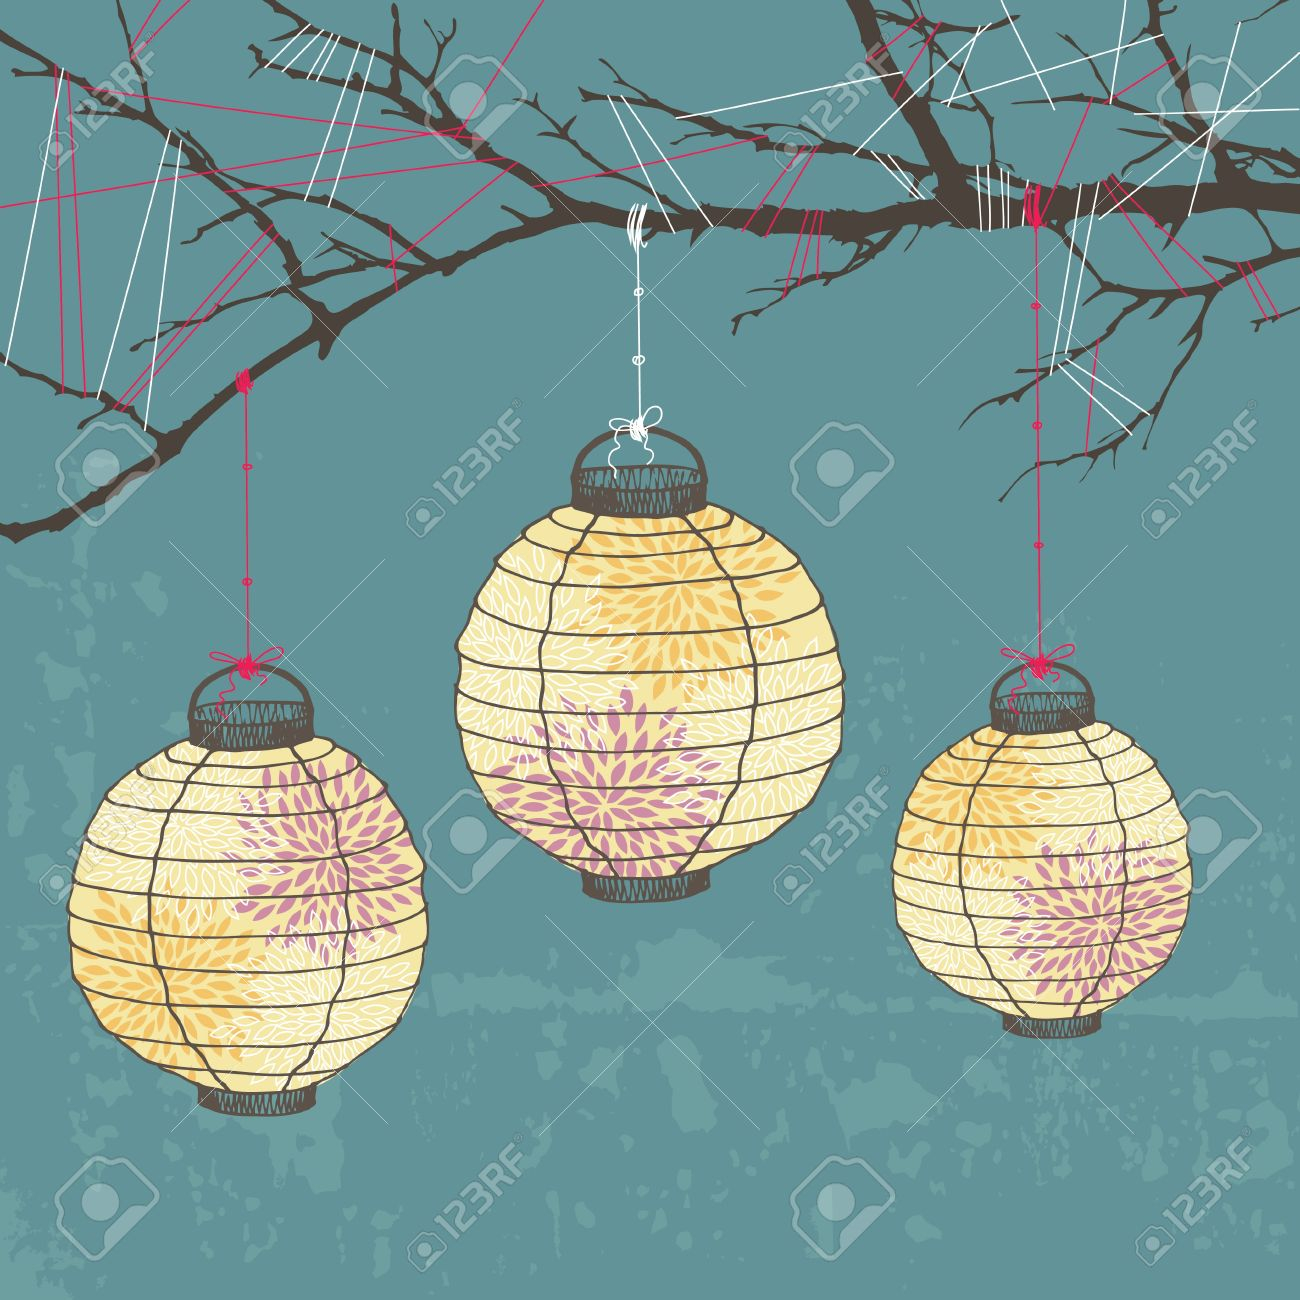 1300x1300 Three Paper Lanterns Hanging On Tree Branch Royalty Free Cliparts